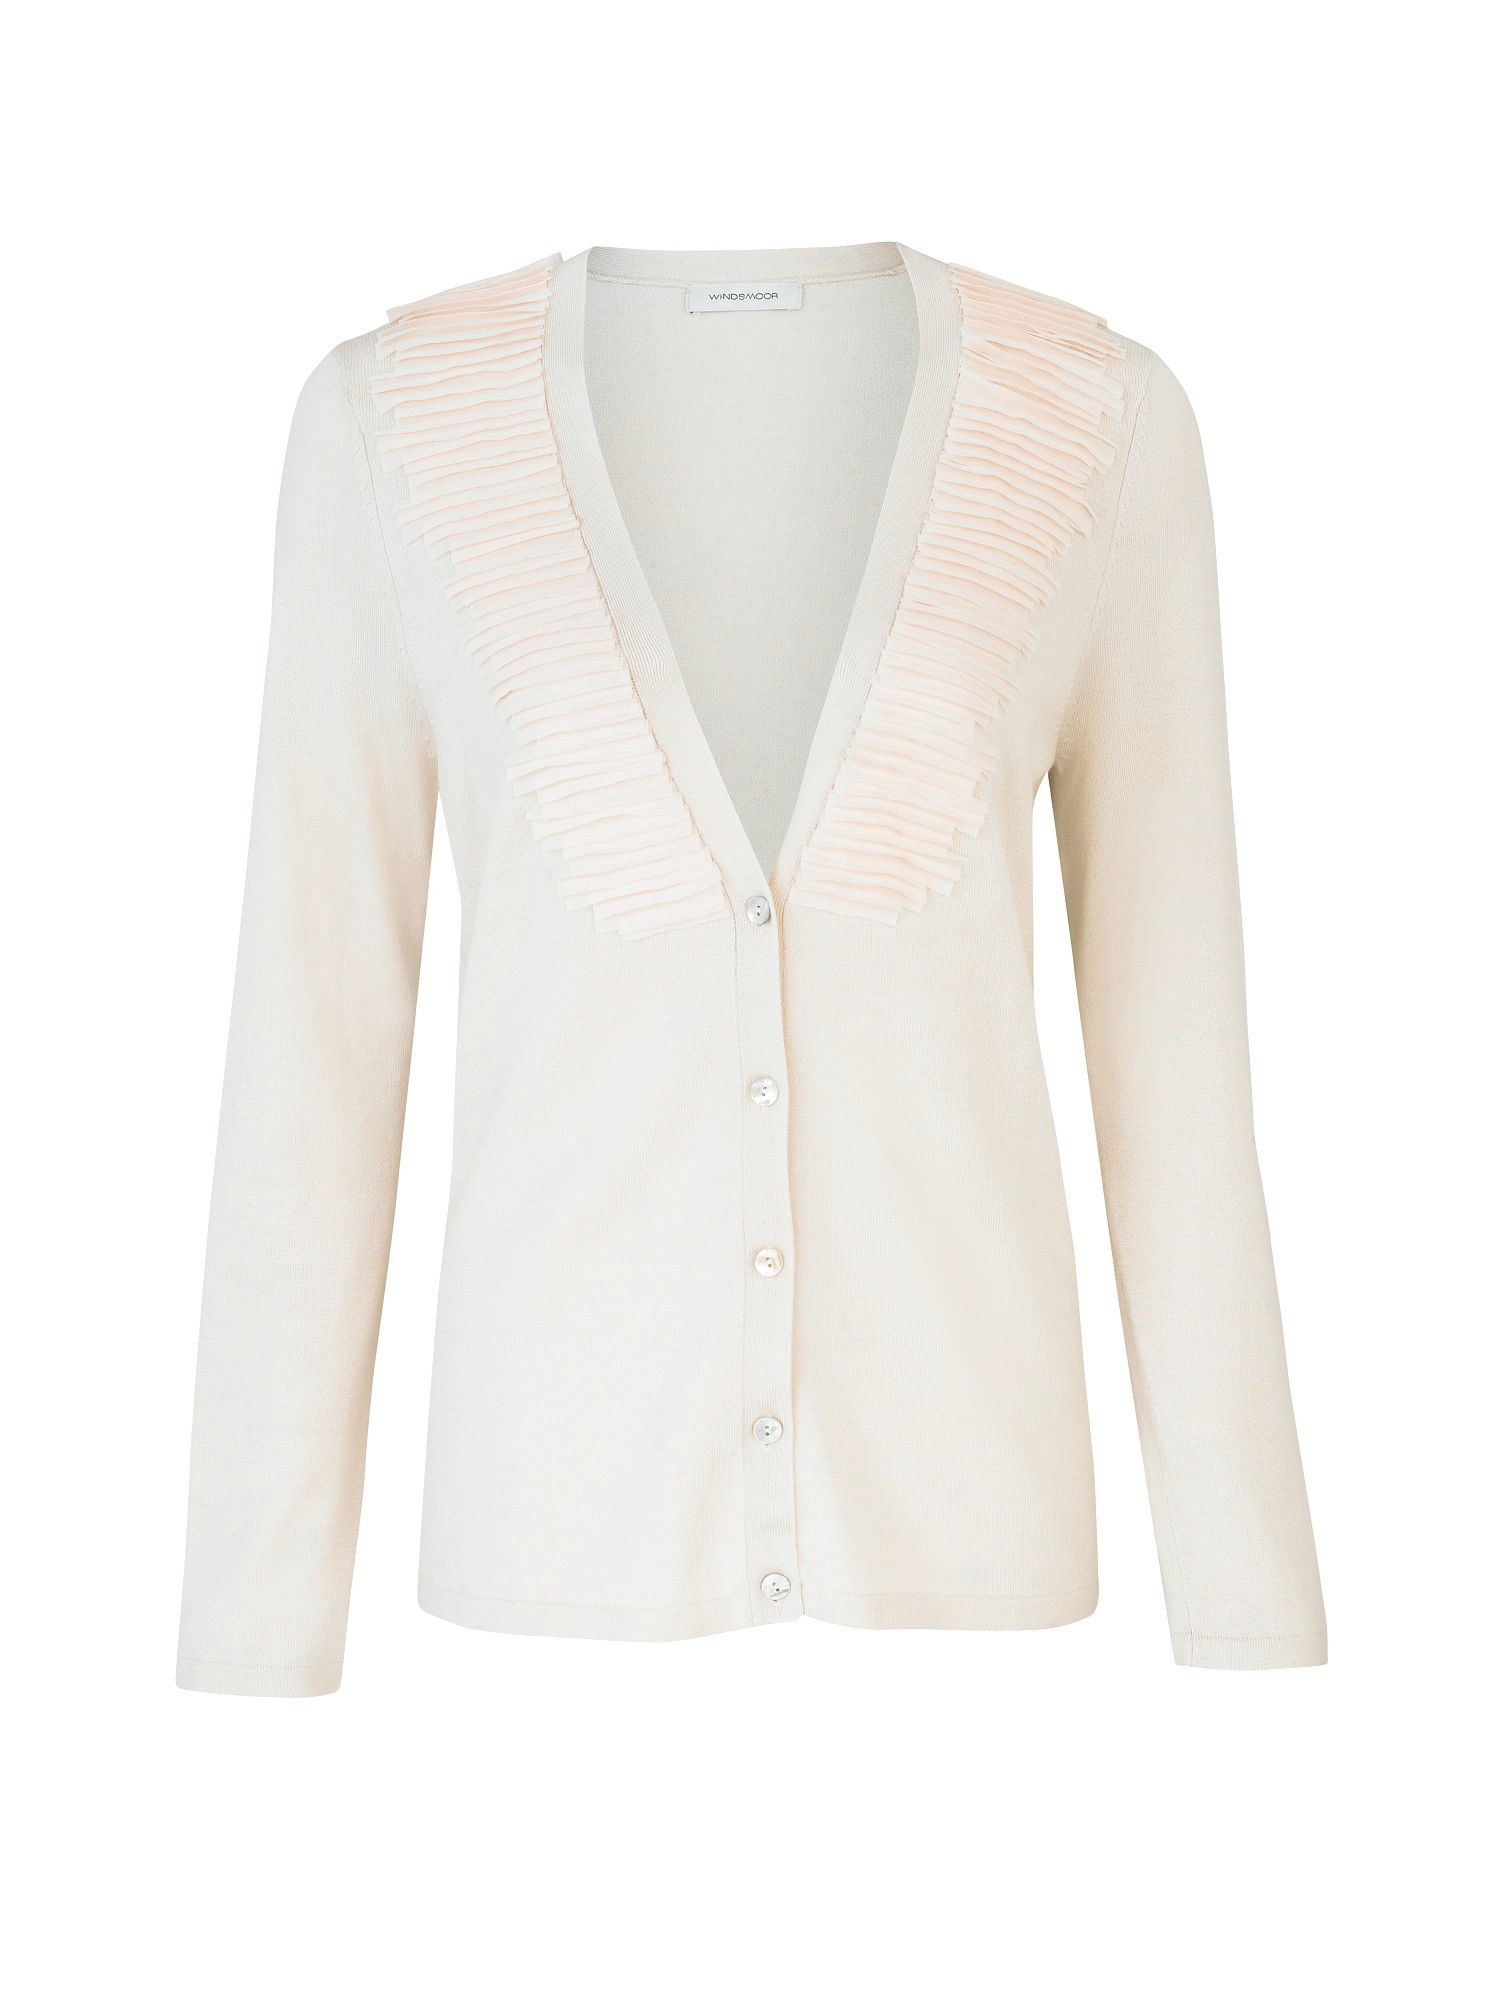 Cream chiffon trim cardigan